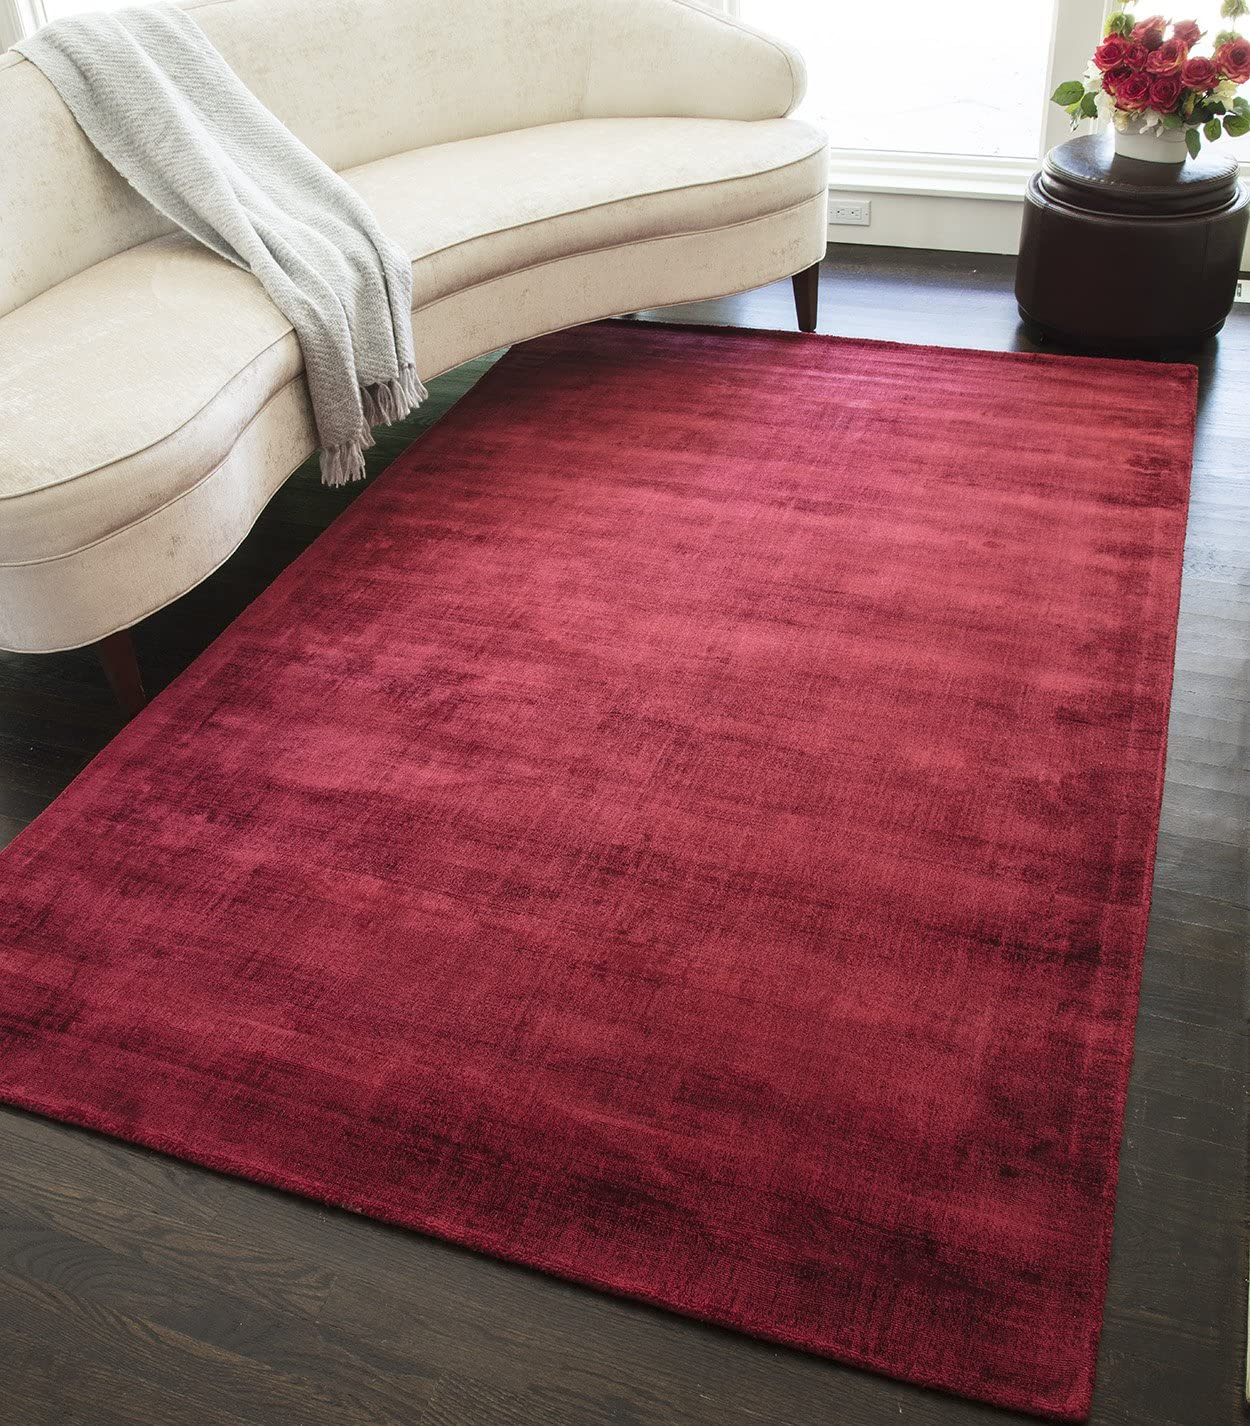 Unique Loom Autumn Collection Casual Rustic Warm Toned Terracotta Area Rug 9 0 x 12 0